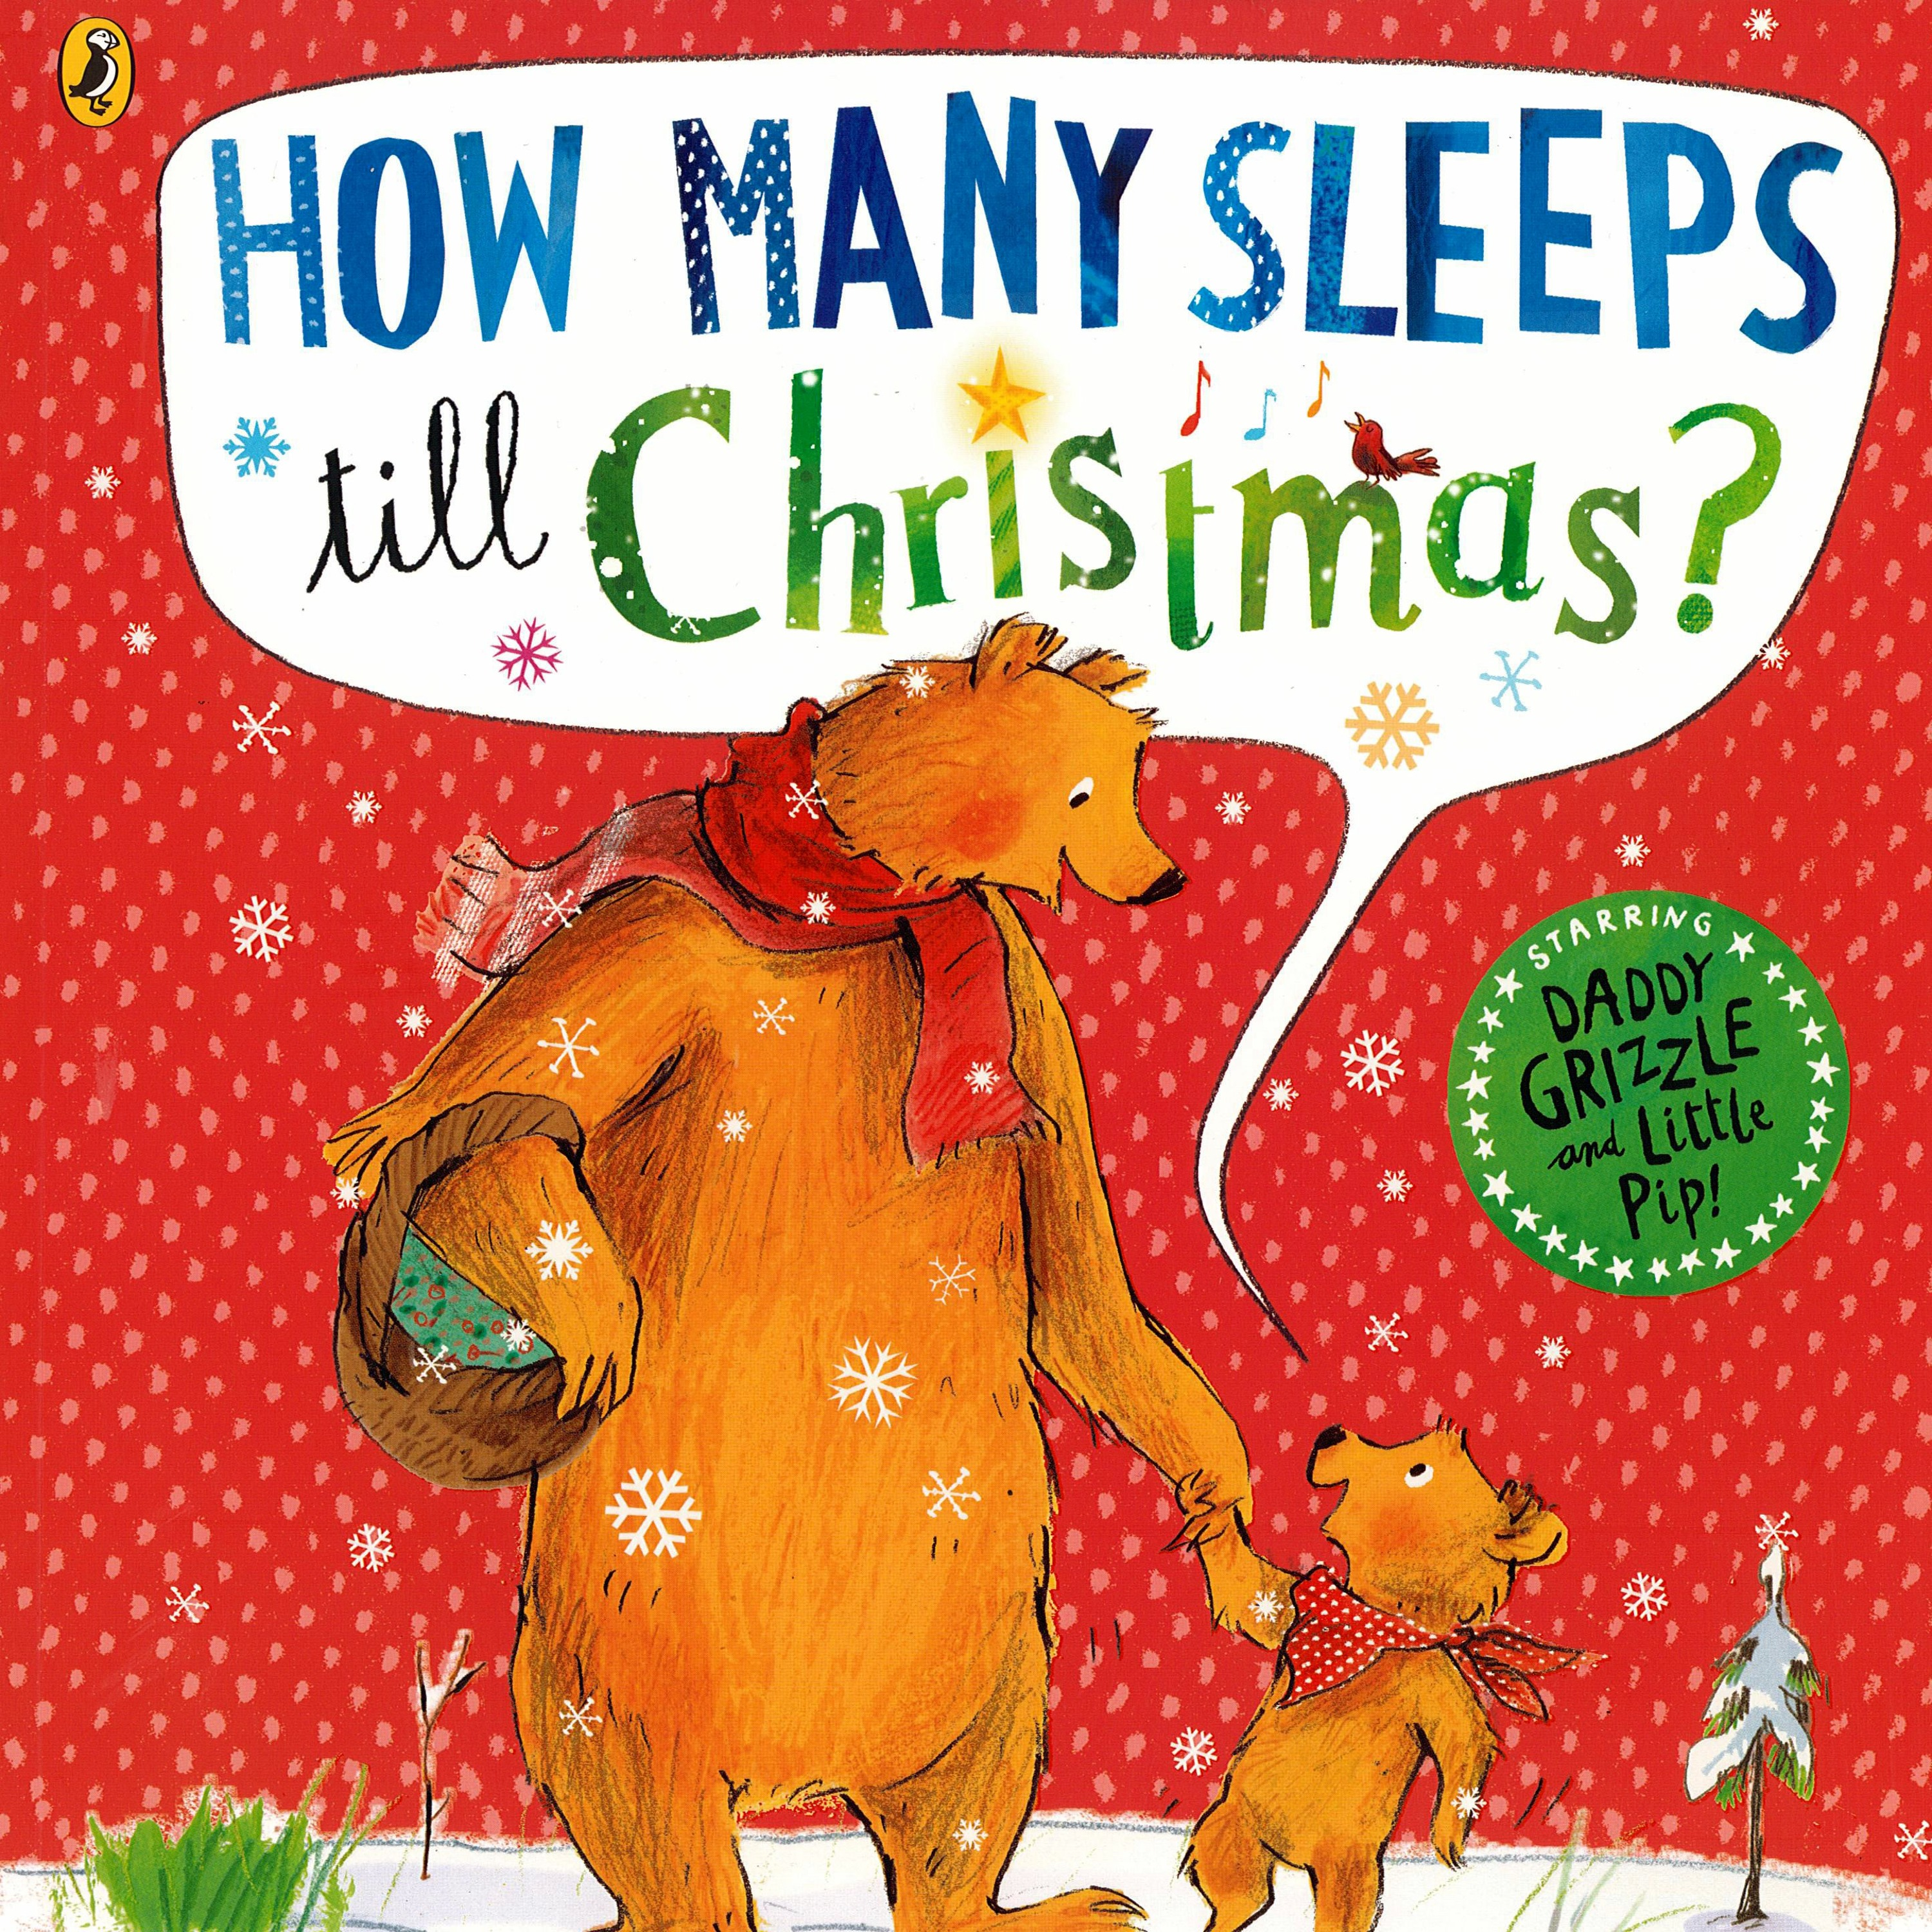 How Many Sleeps Till Christmas by Mark Sperring & Sebastien Braun